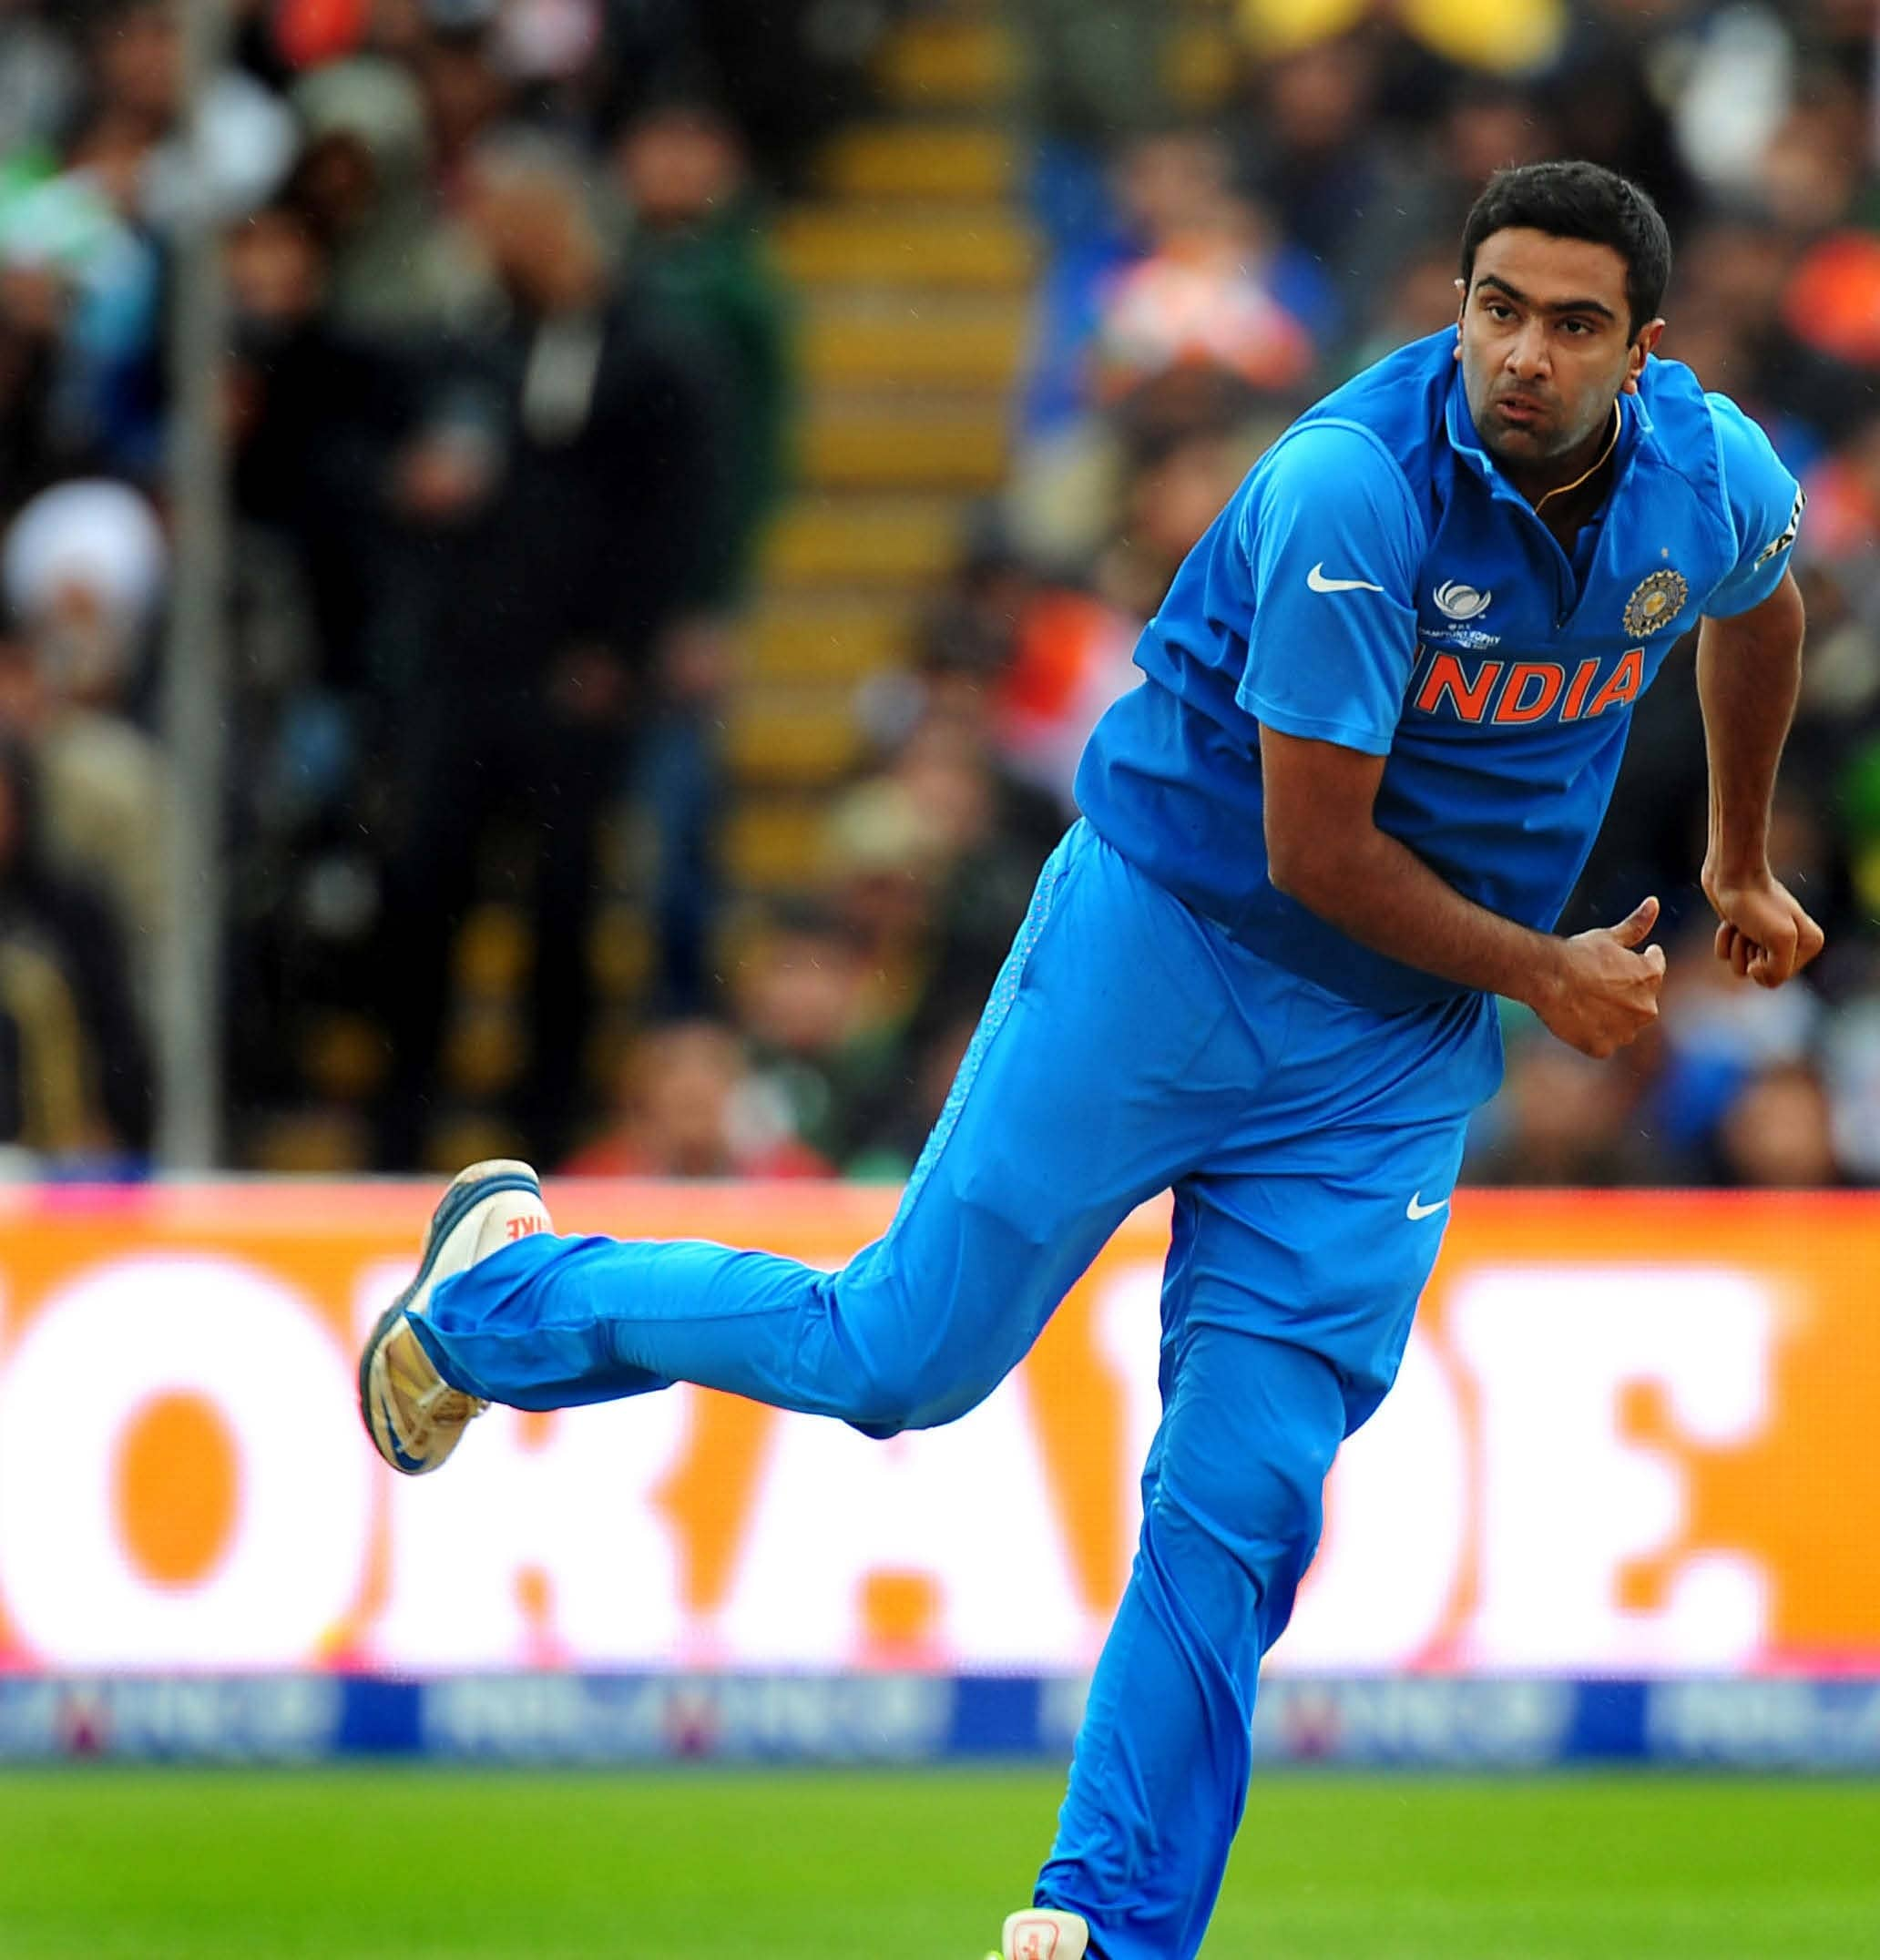 ASHWIN'S PLACE IN INDIAN TEAMS–THE DEBATE REIGNITES